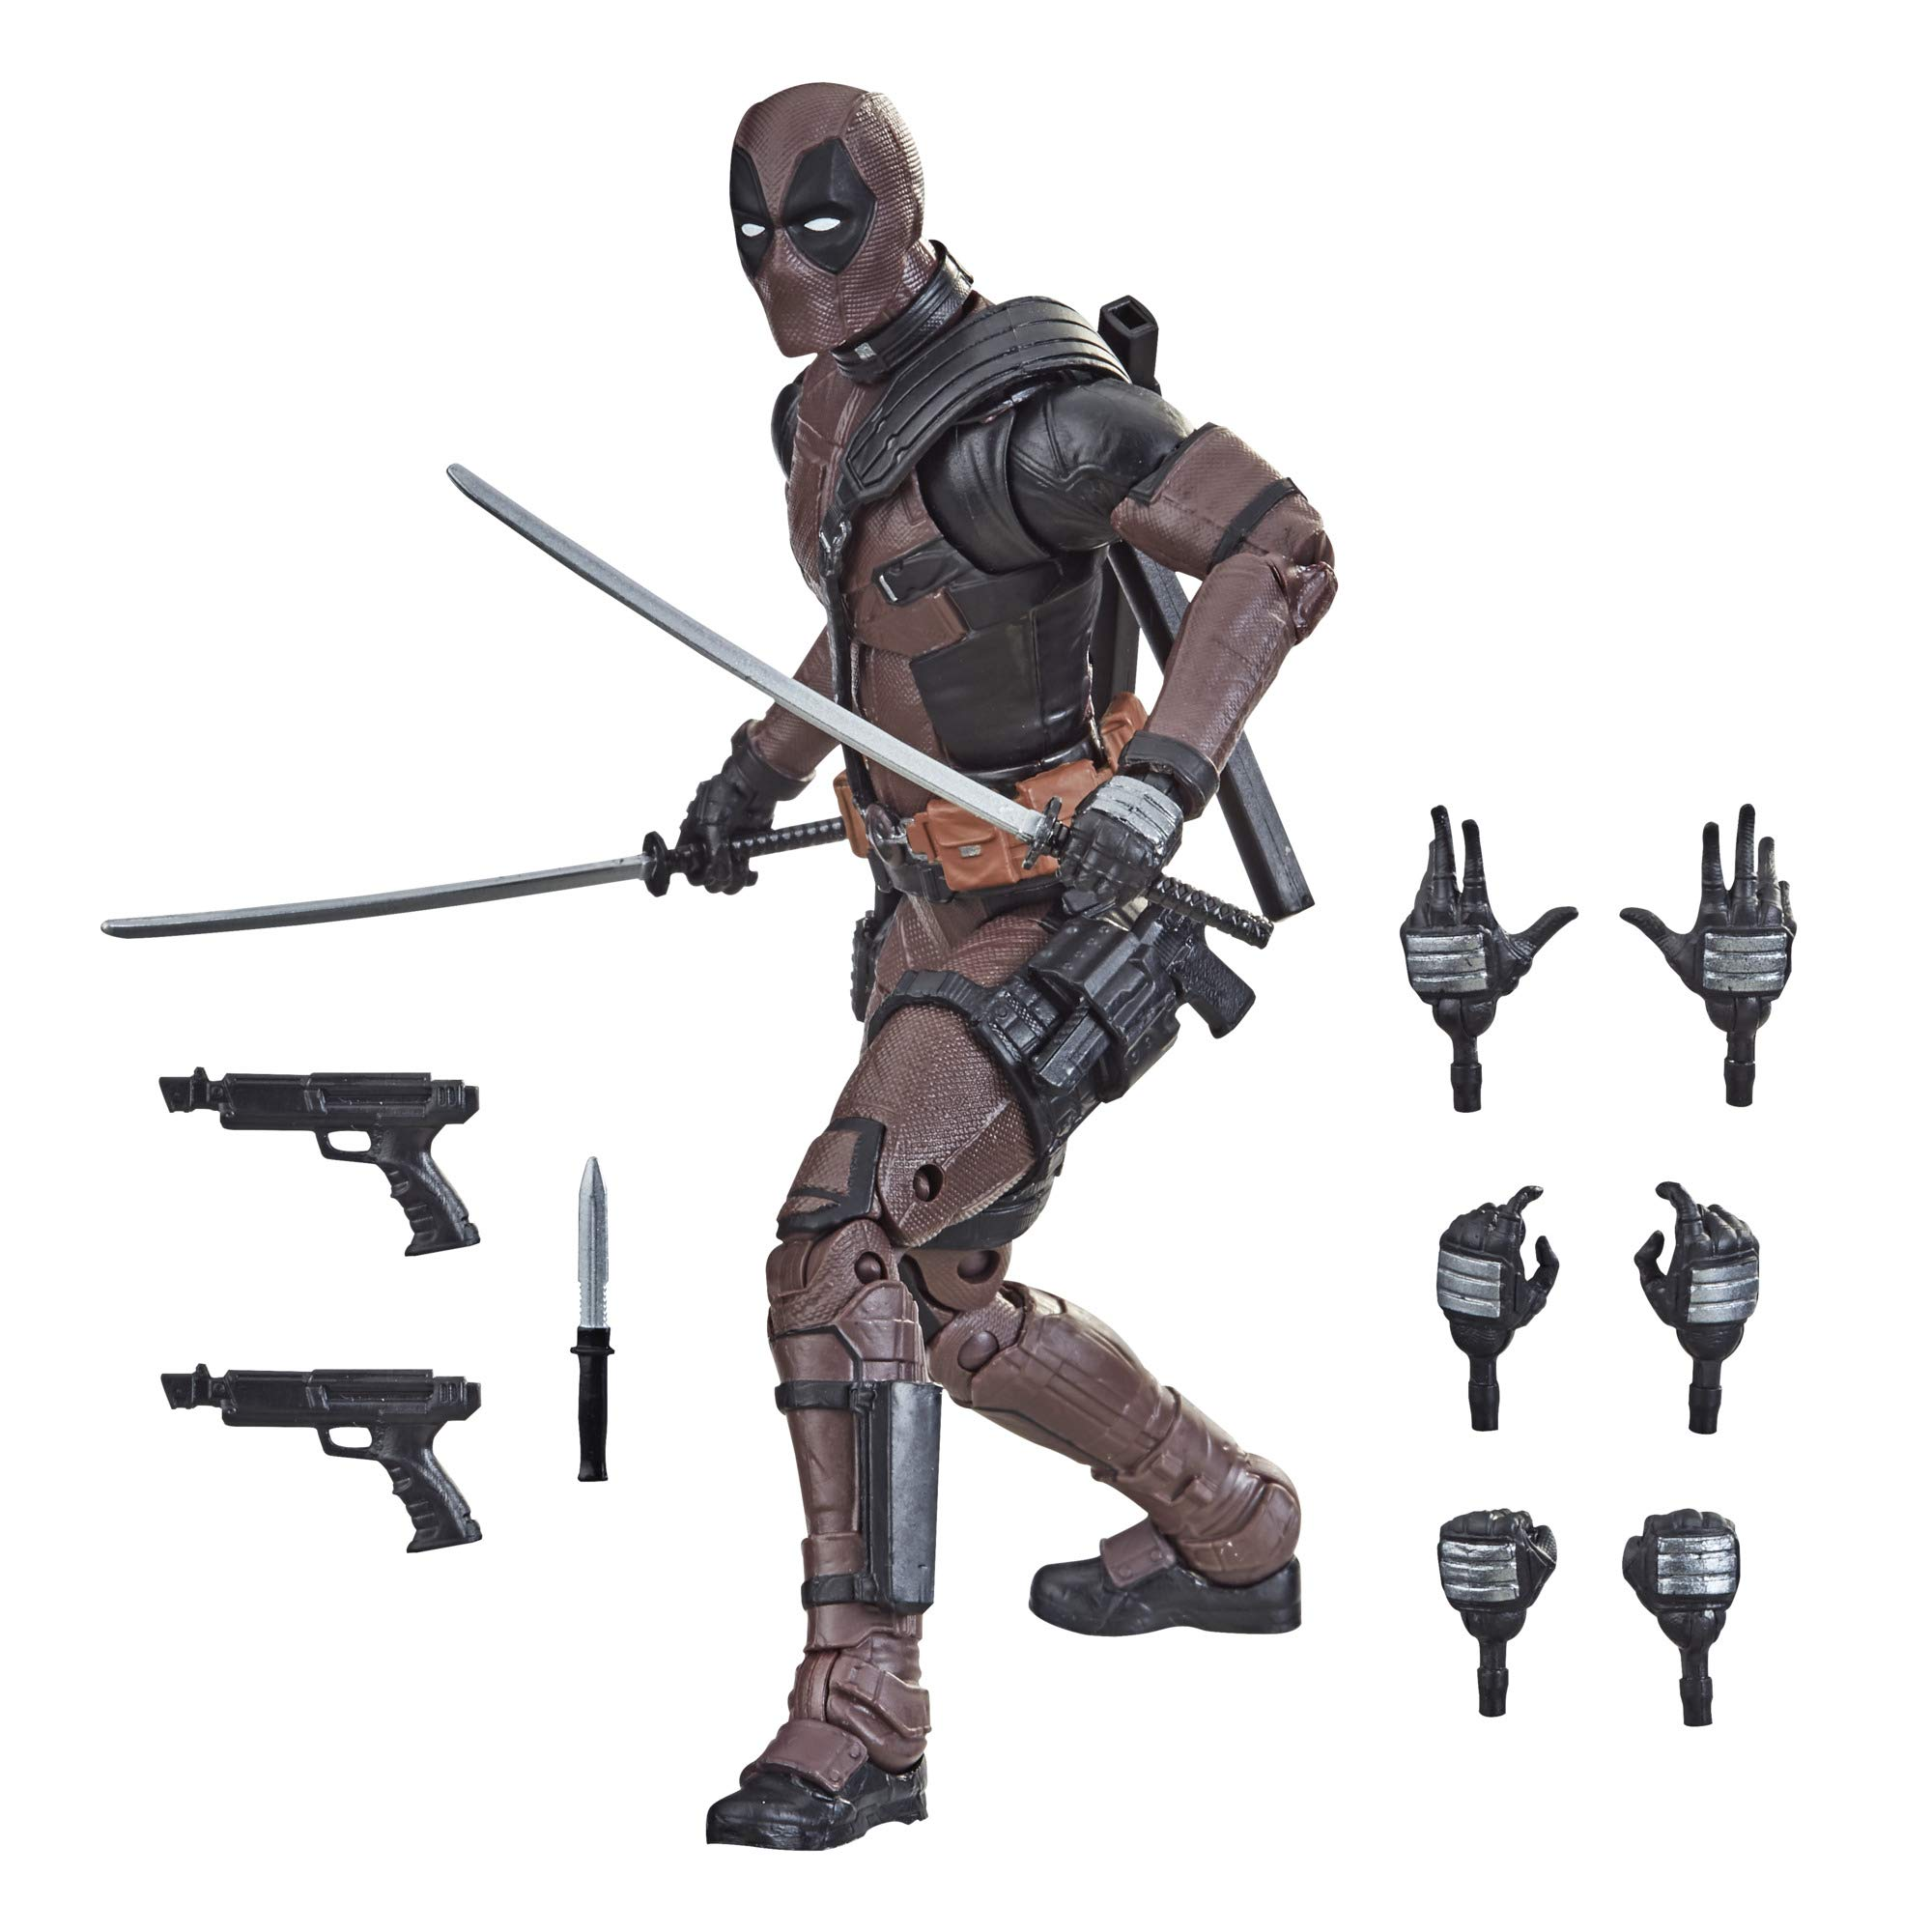 Hasbro Marvel Legends Series 6-inch Premium Deadpool Action Figure Toy from Deadpool 2 Movie and 11 Accessories (Amazon Exclusive)